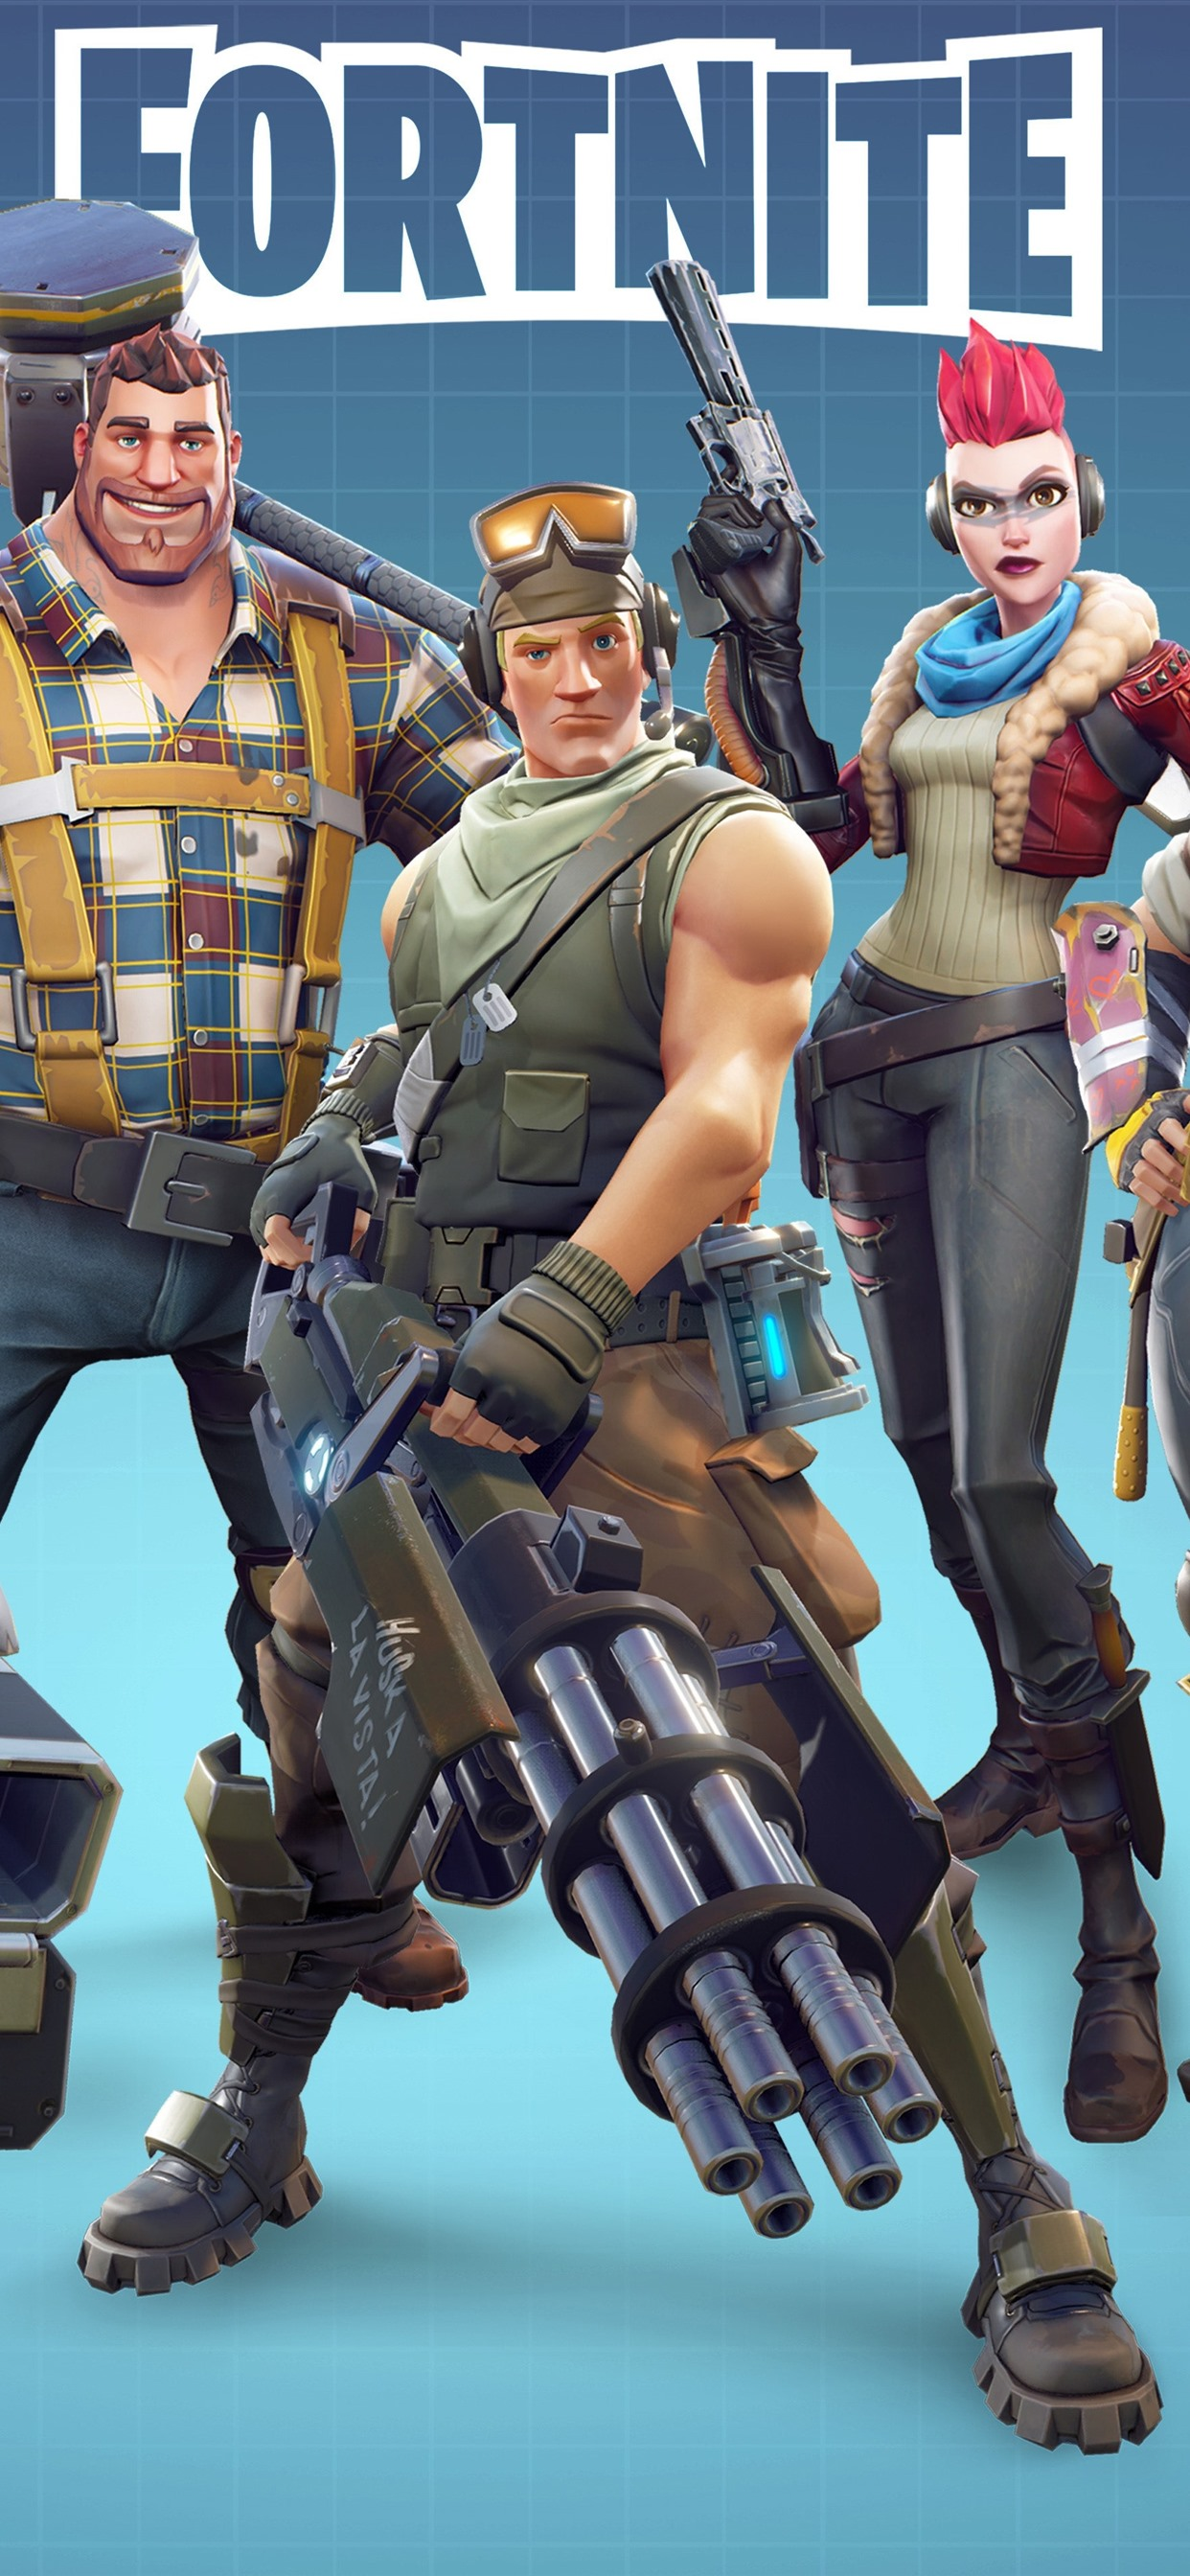 Fortnite Xbox Game 1242x2688 Iphone 11 Pro Xs Max Wallpaper Background Picture Image